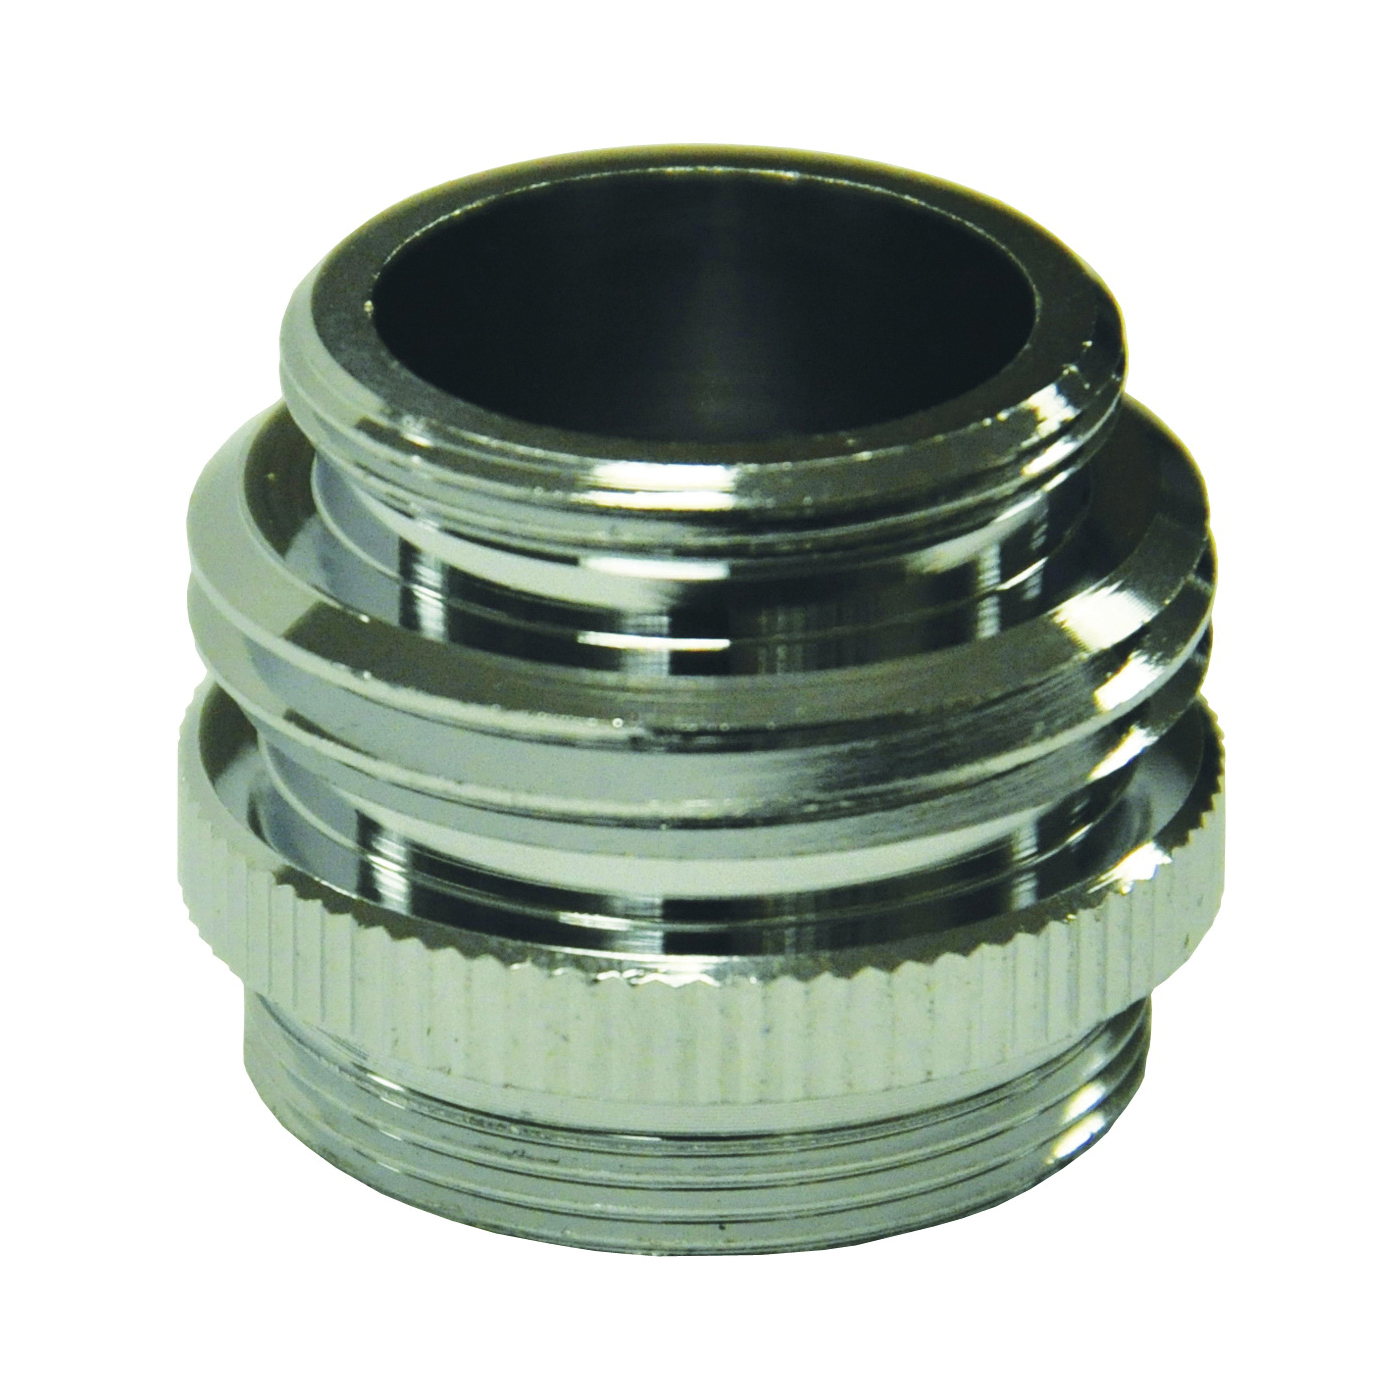 Picture of Danco 10513 Hose Adapter, 15/16-27, 55/64-27 x 3/4, 55/64-27 in, Male/Female x GHTM/Male, Brass, Chrome